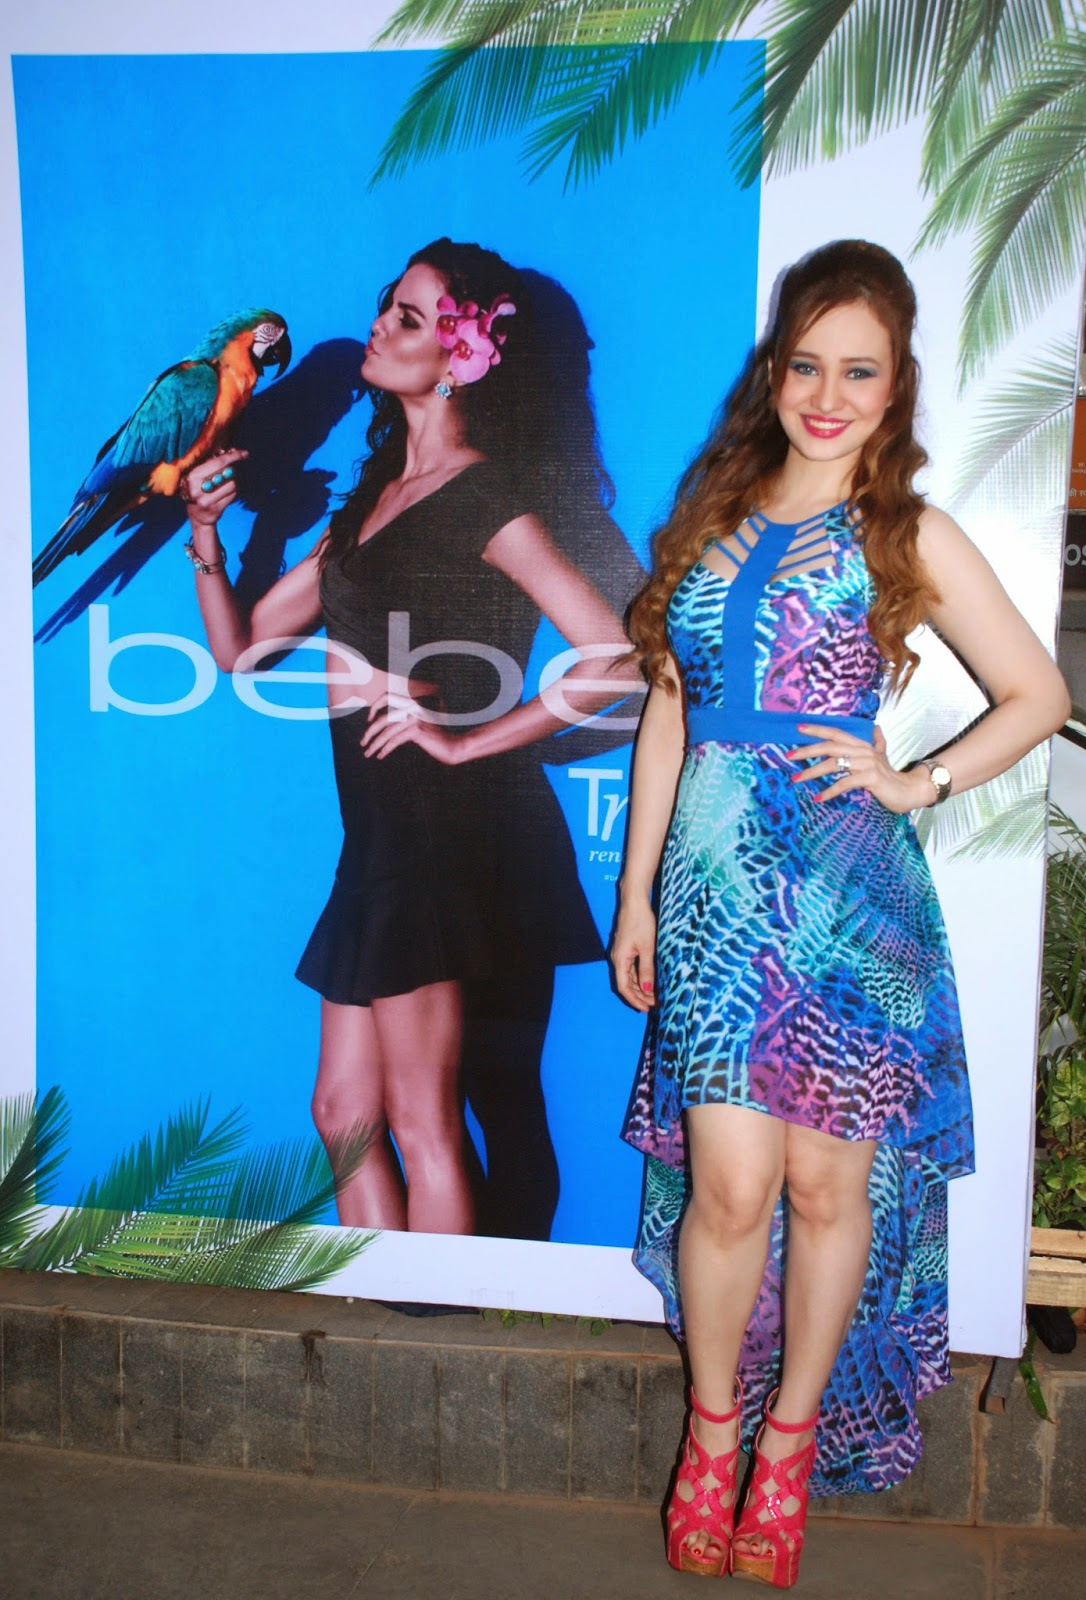 Stephanie Timmins at the Bebe Tropic Rendezvous Event, Mumbai